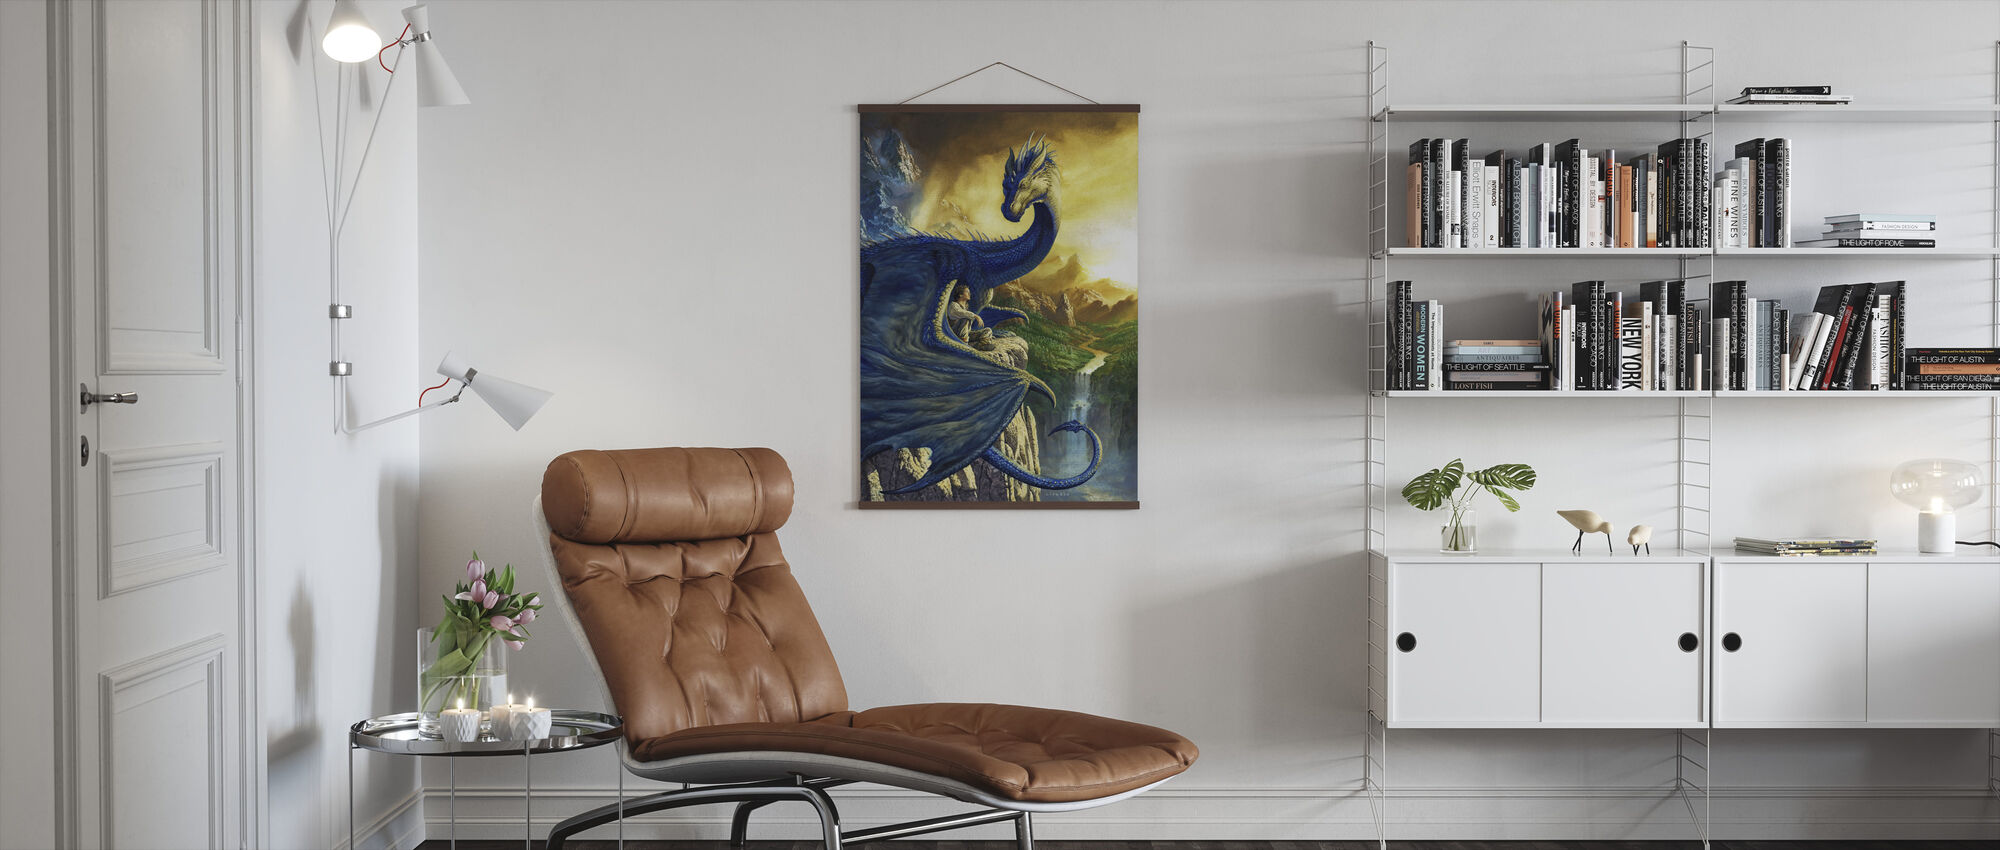 Eragon - Poster - Living Room